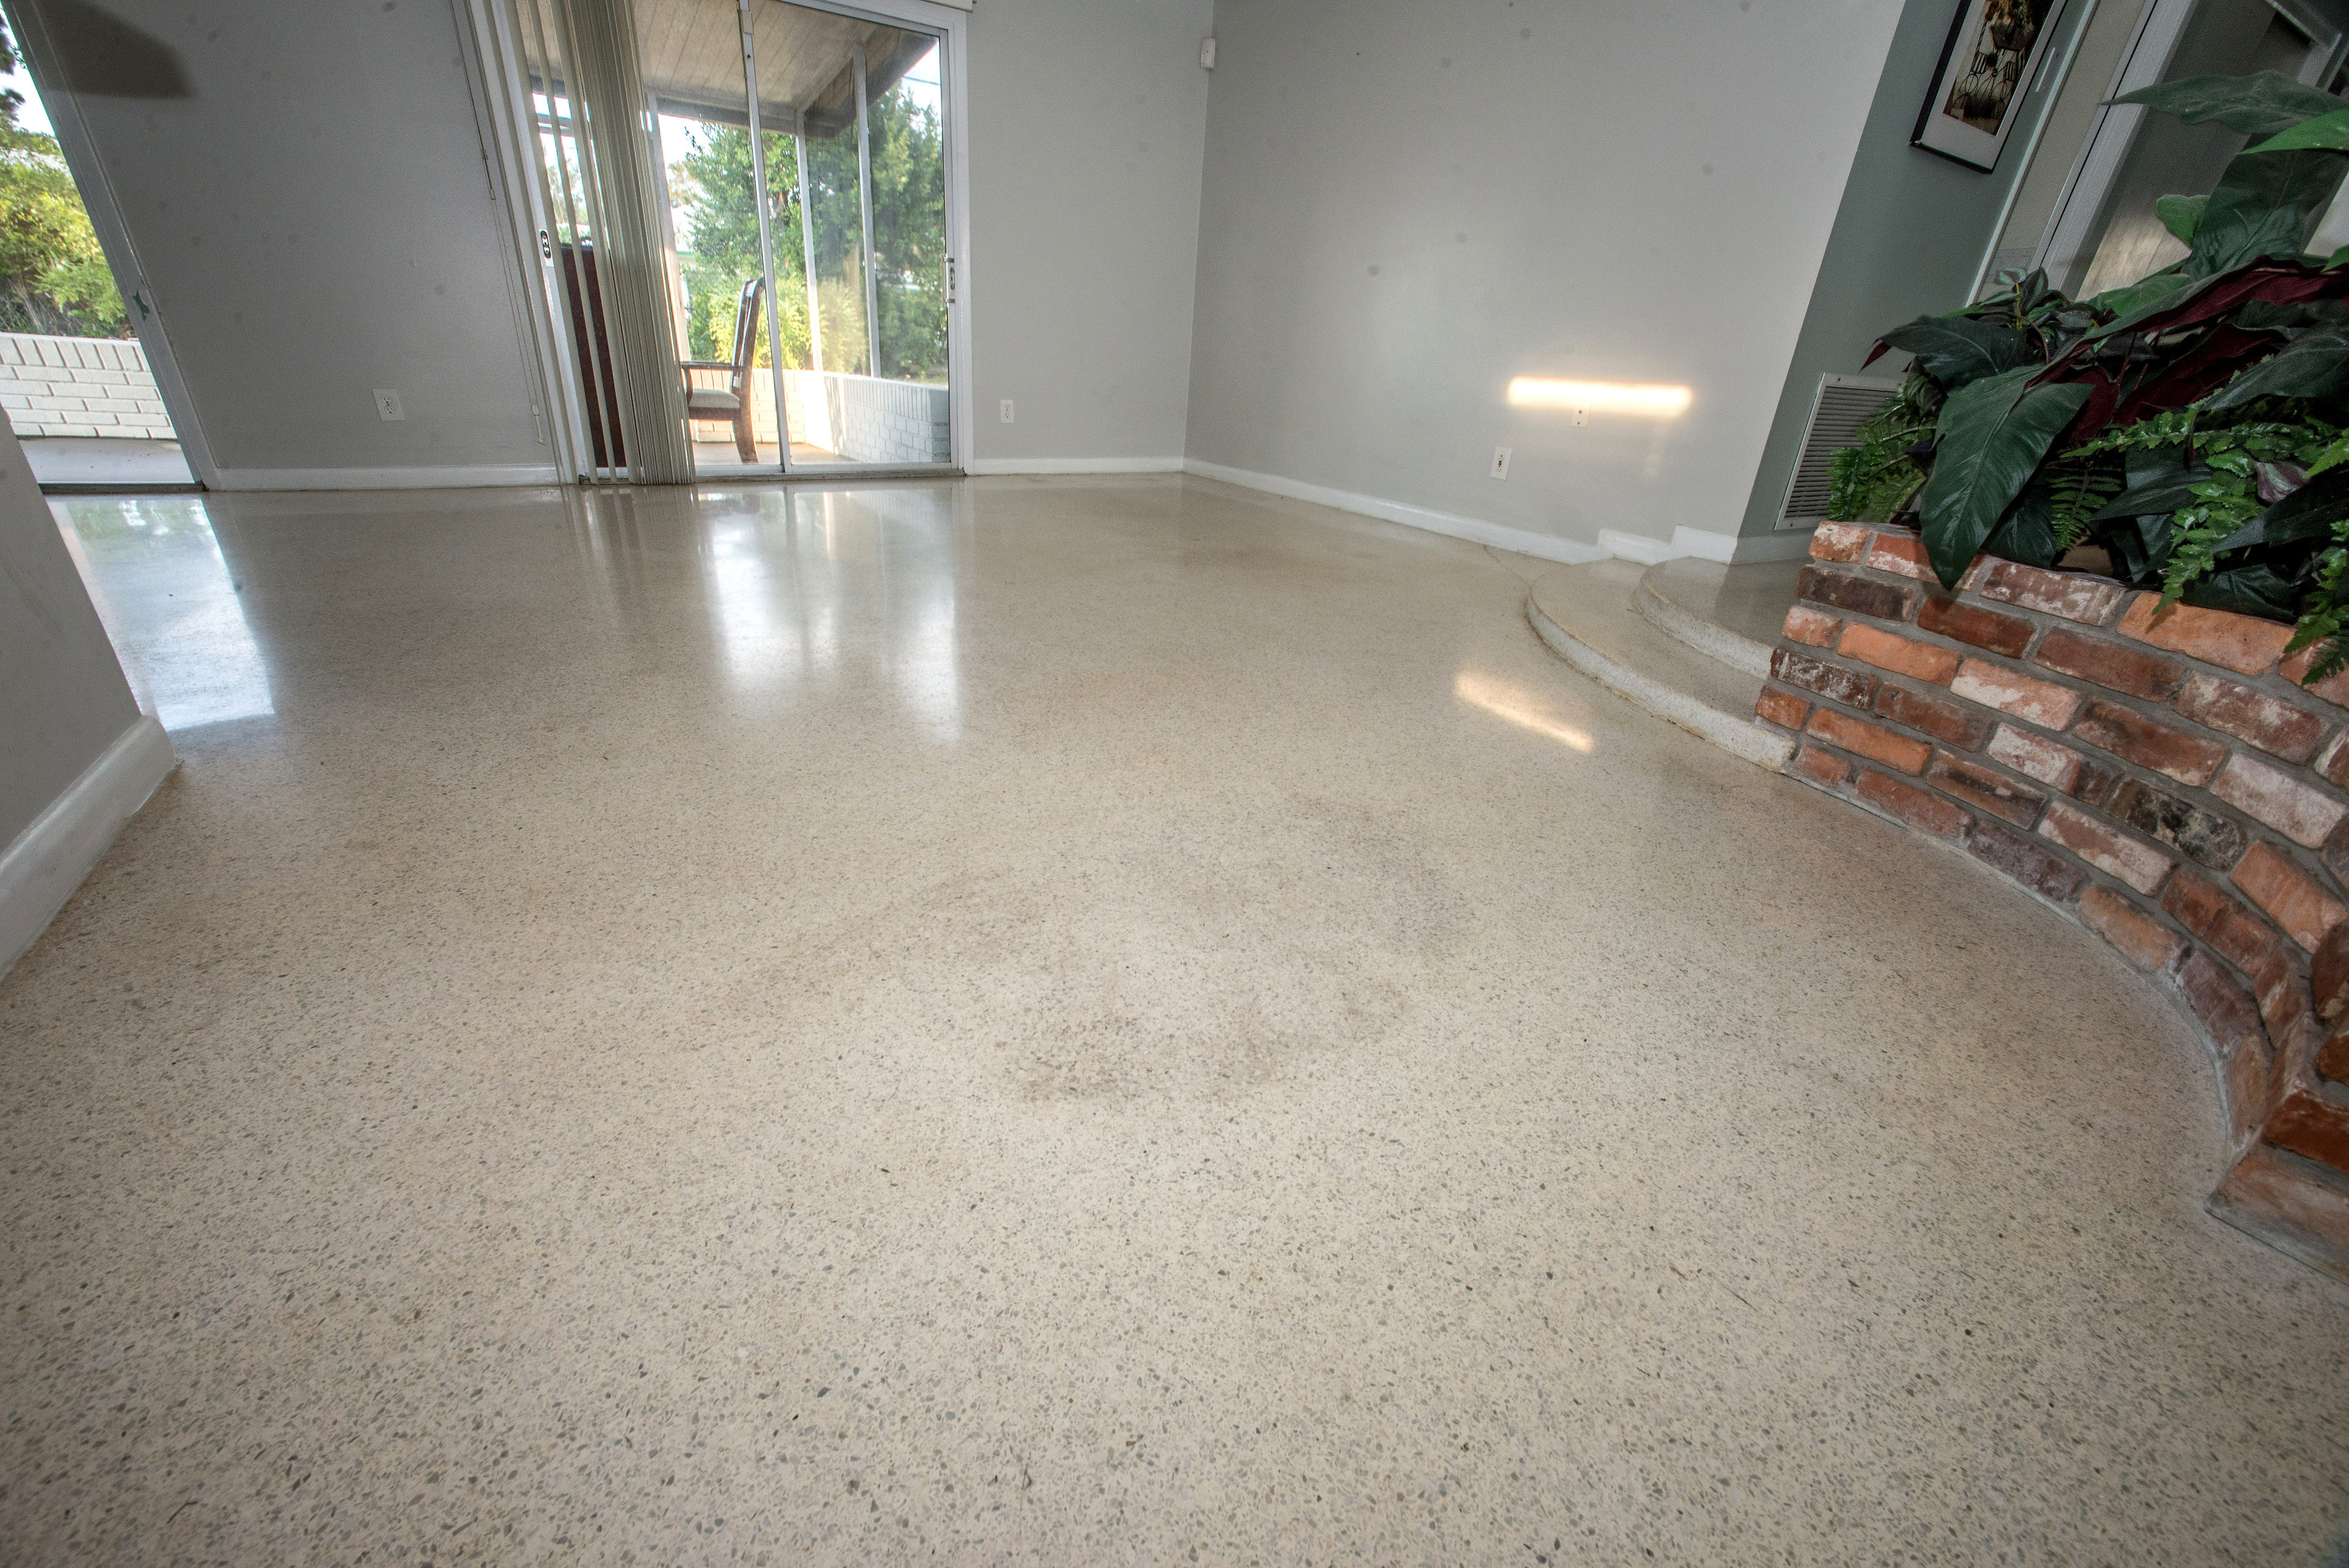 floor terrazzo after with cleaning deep floors vinegar tips restoration and stone tiles old etched polishing